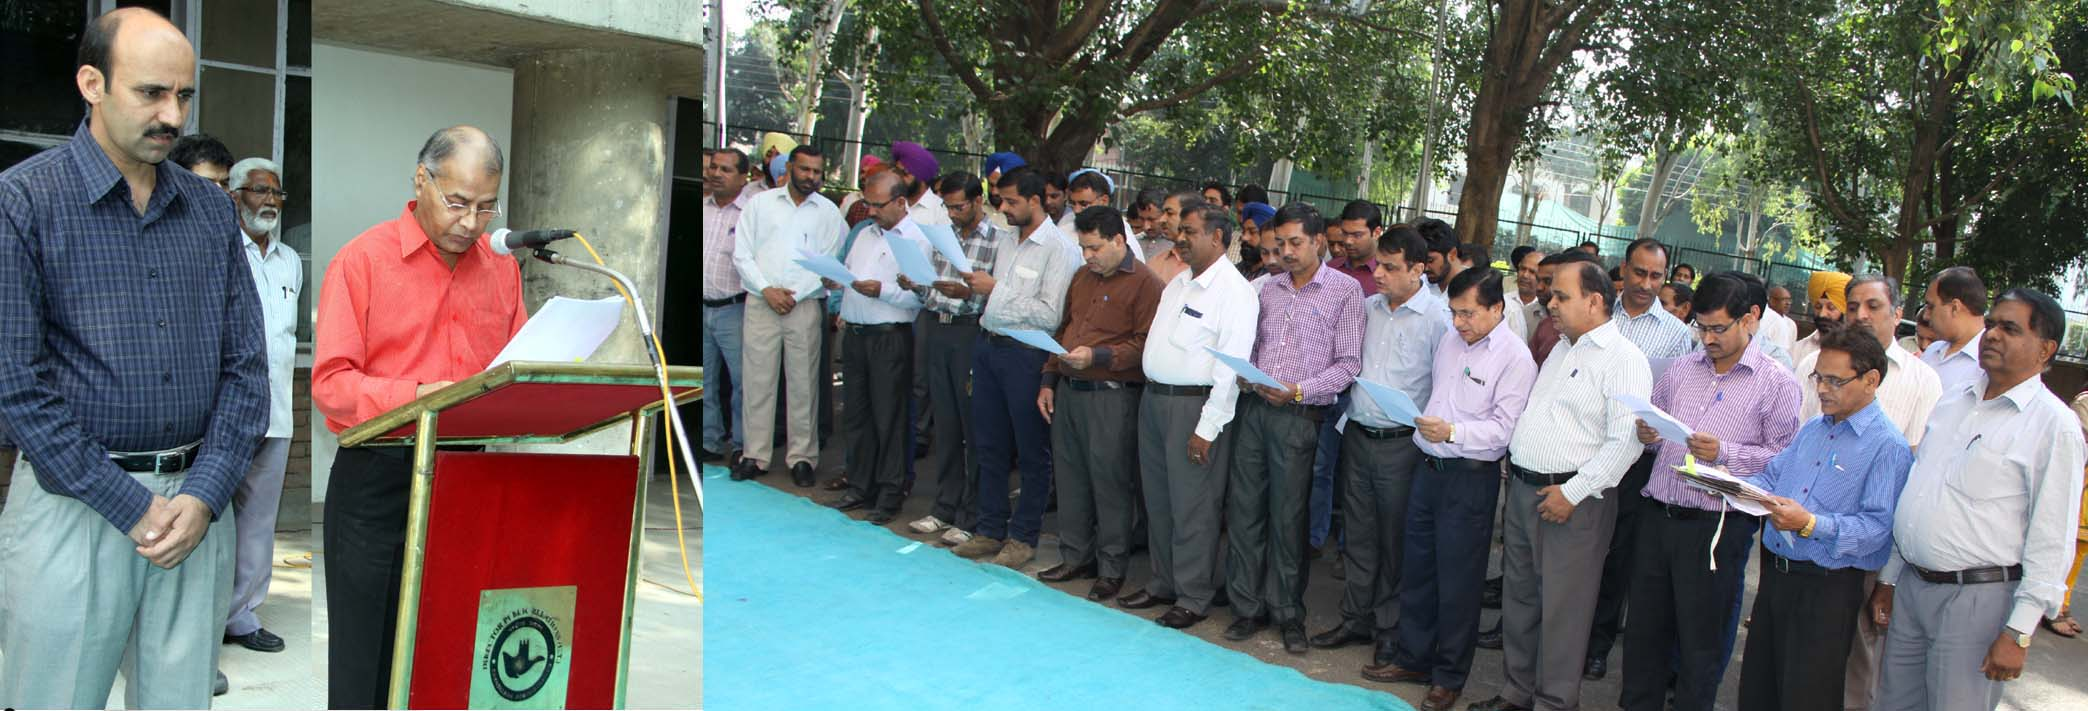 Director Public Relations-cum-Joint Secretary Home, Chandigarh Administration, Mr. M.M. Sabharwal administering the pledge to the officials of Chandigarh Administration on the occasion of Rashtriya Ekta Diwas at UT Secretariat, Chandigarh on Friday, October 31, 2014.